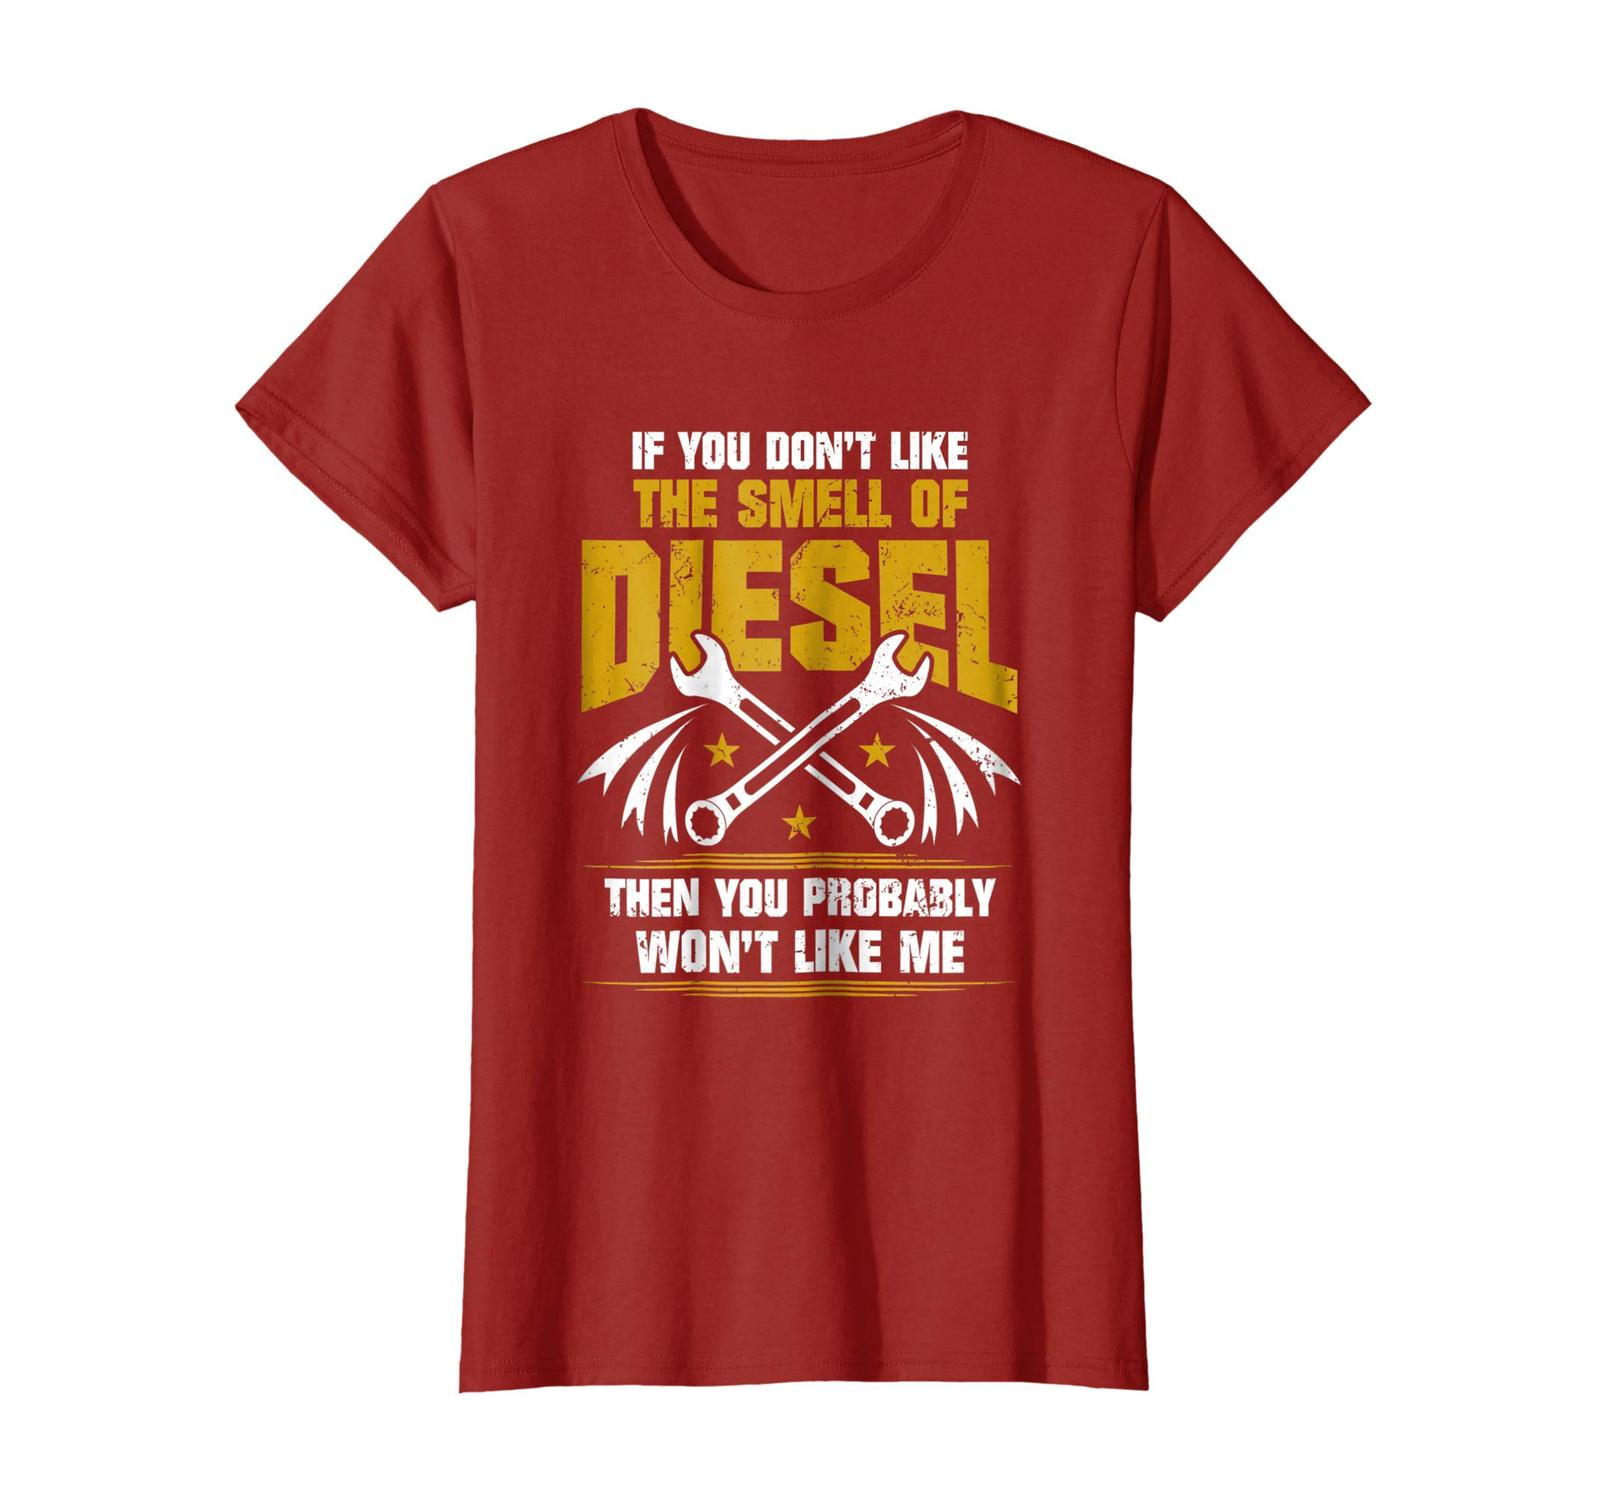 Brother Shirts - Diesel Mechanic Shirt - Don't Like The Smell Of Diesel Wowen